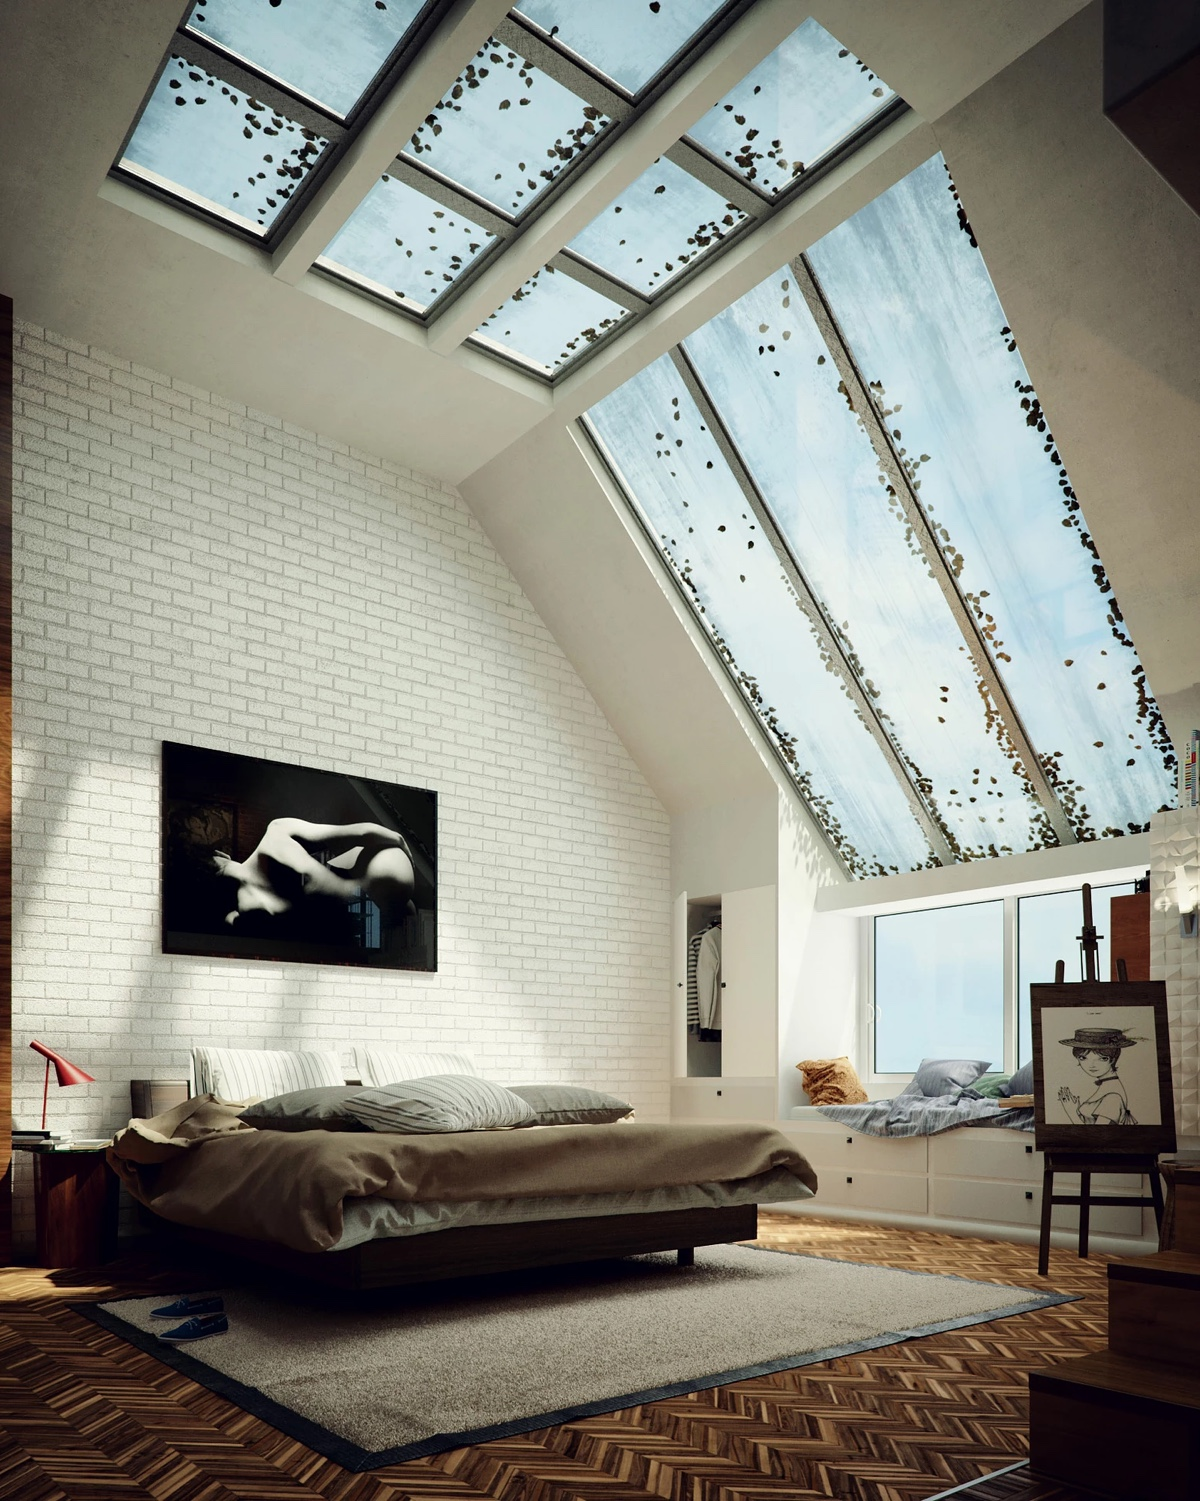 Wide Skylight Bedroom With Exposed Brick - Bedrooms with exposed brick walls